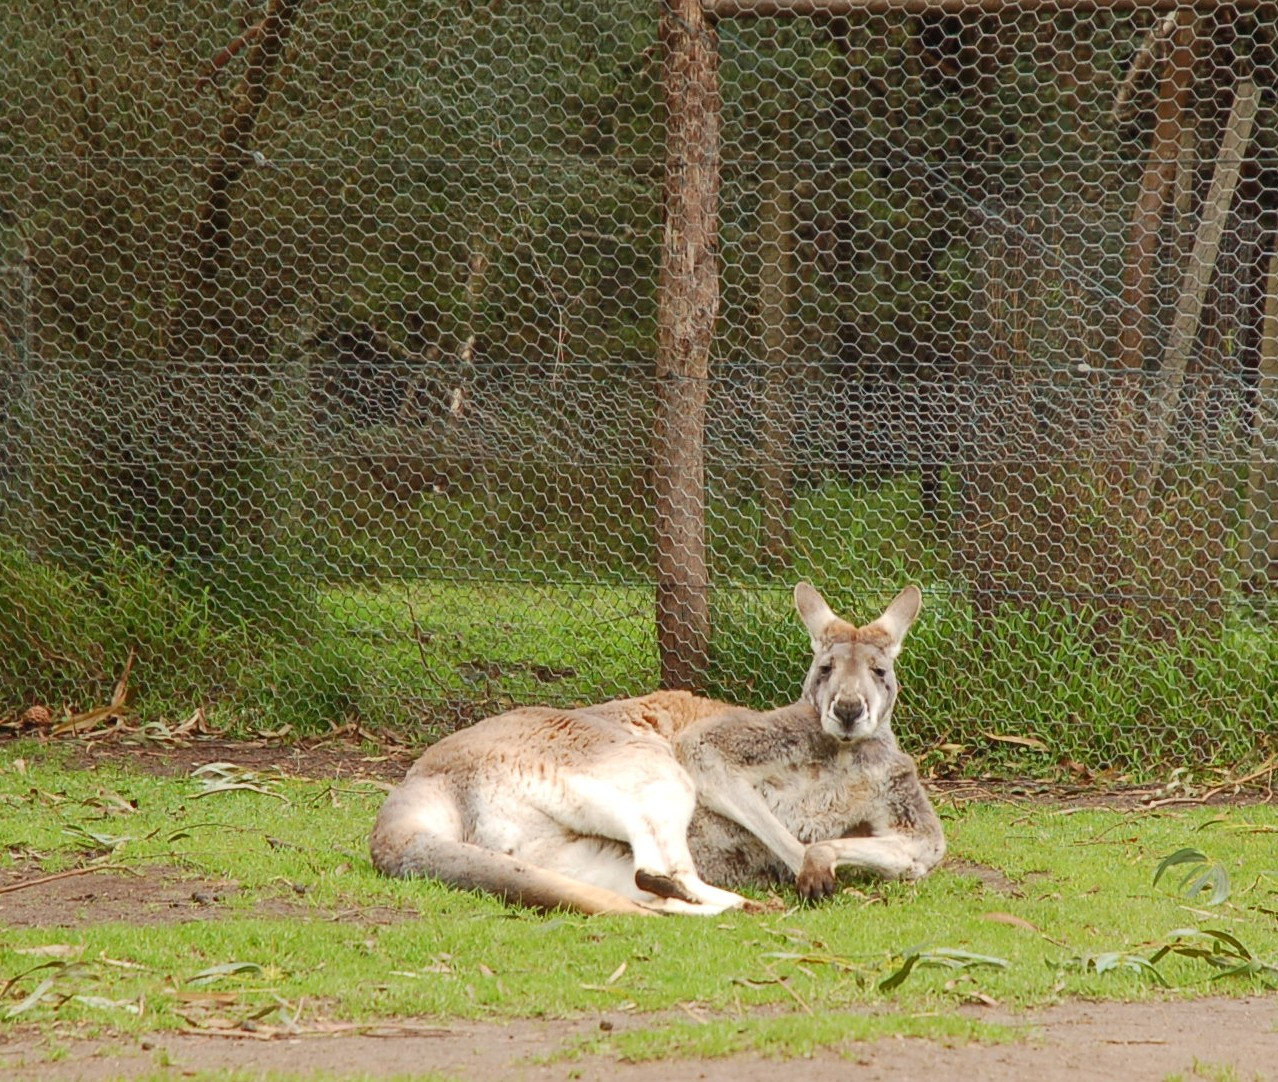 Kangaroos are turning on humans for food, experts say